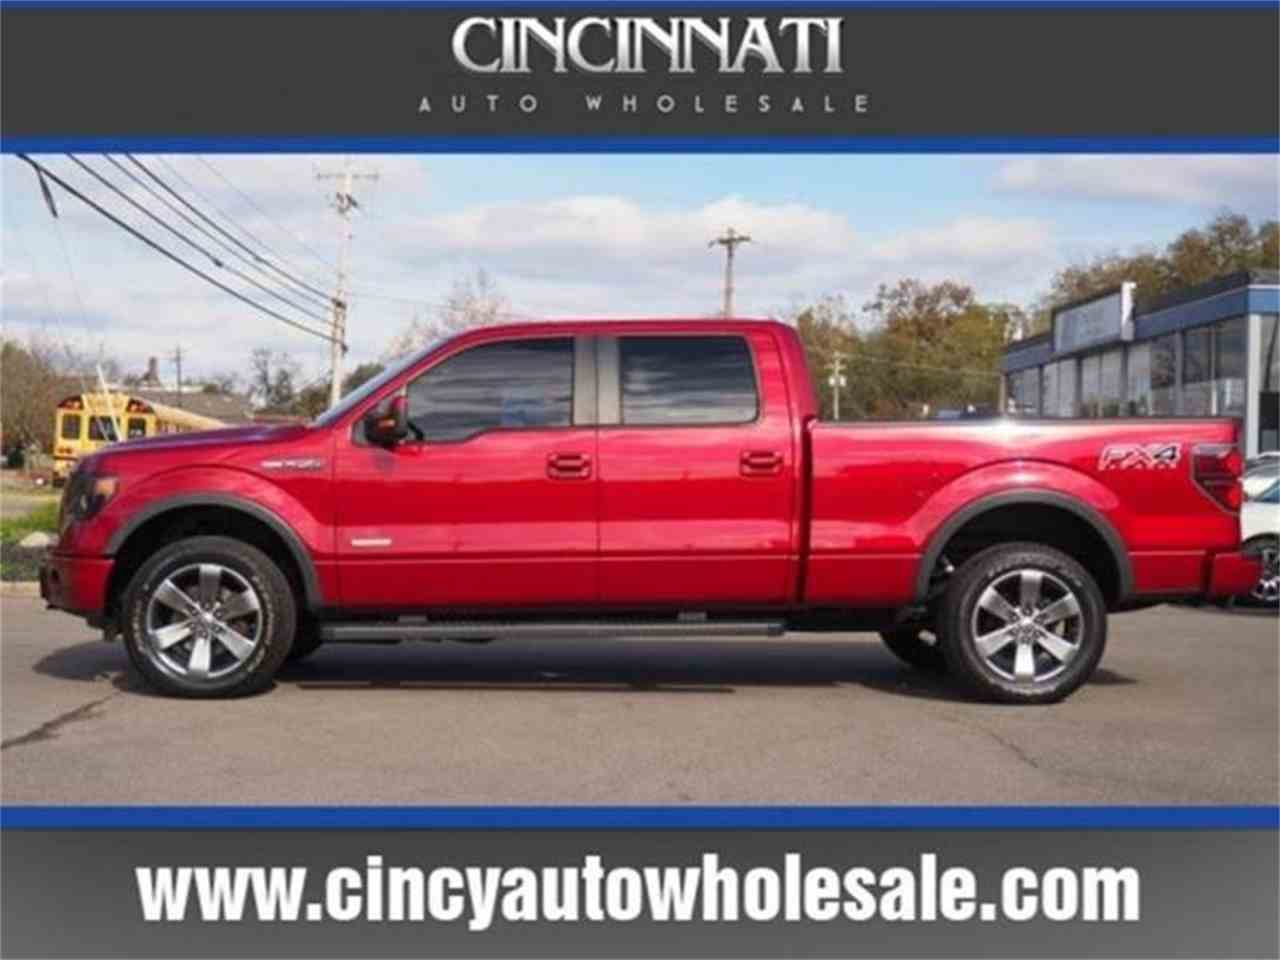 Large Picture of '14 Ford F150 located in Ohio Offered by Cincinnati Auto Wholesale - MBNX